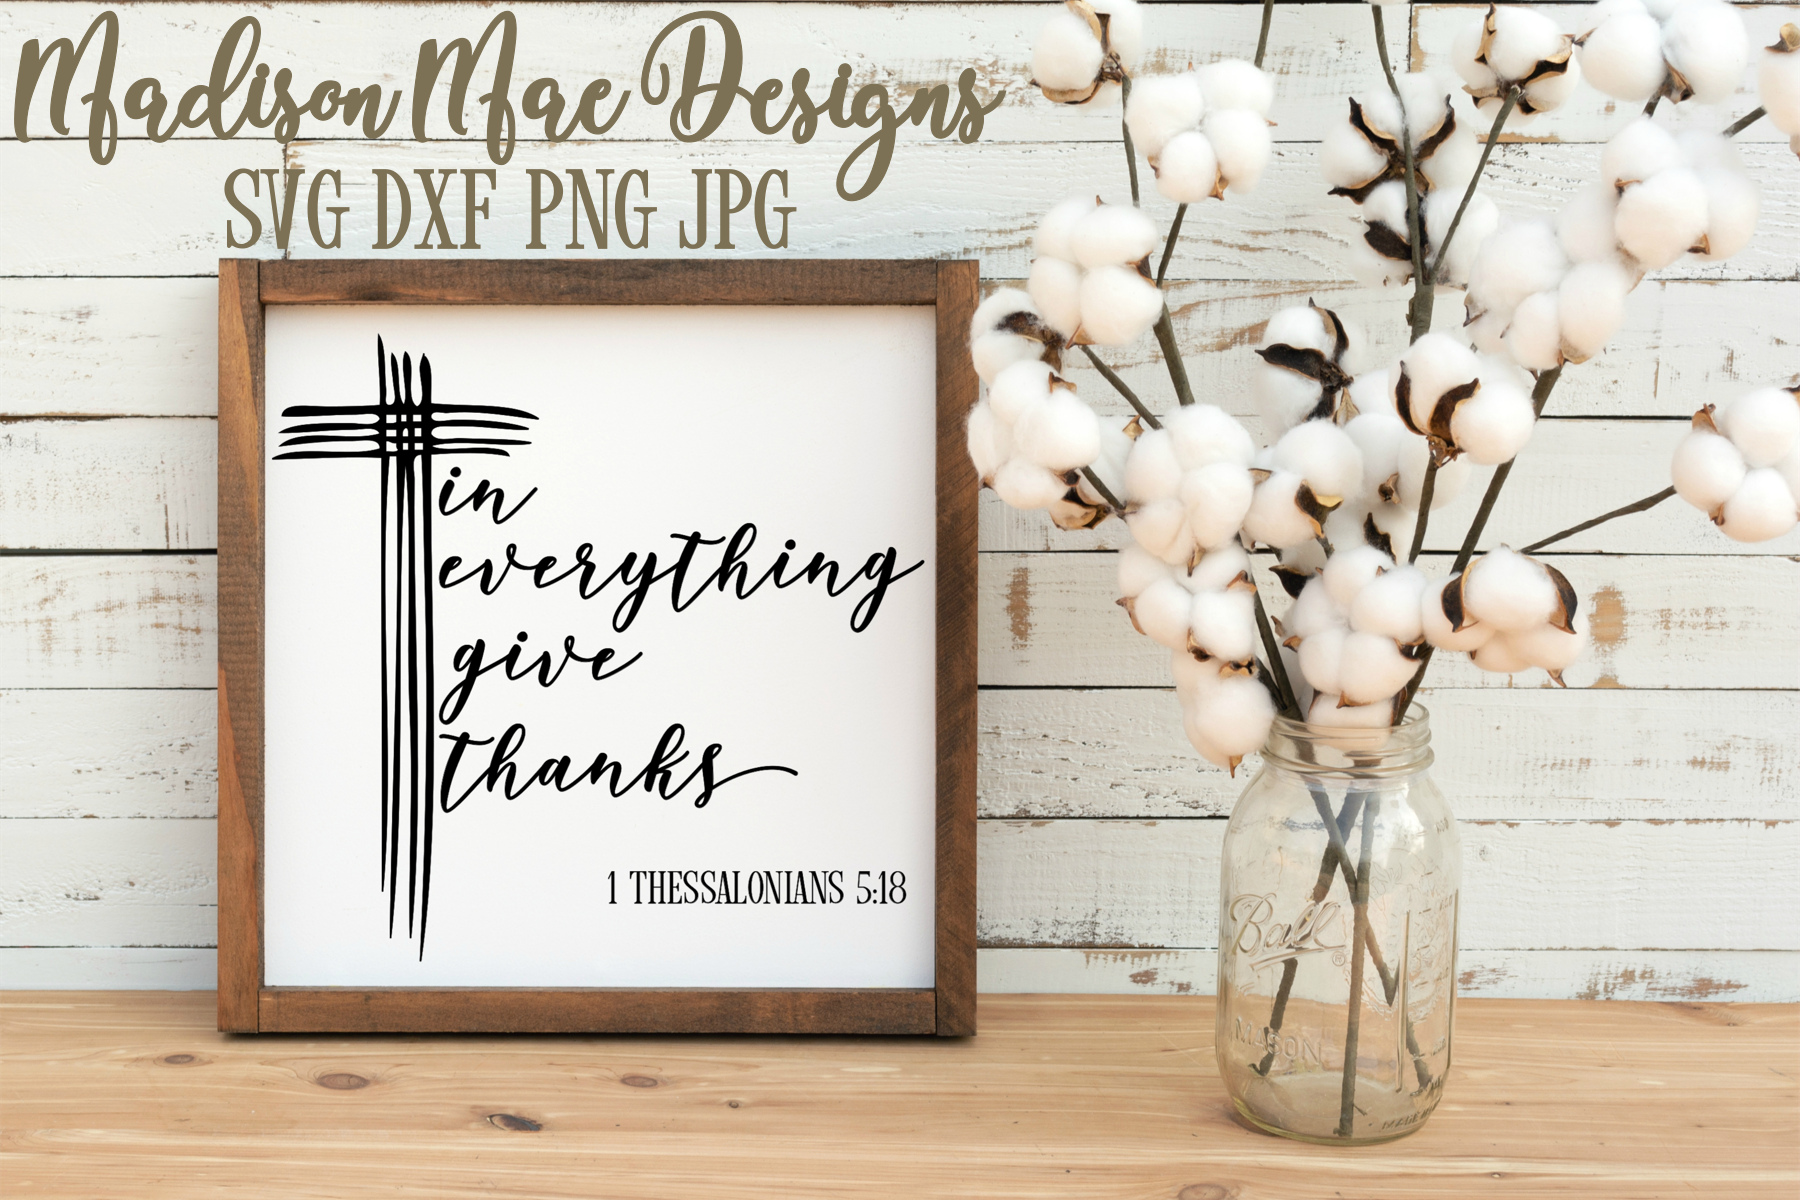 Bible Verse SVG | Christian SVG | In Everything Give Thanks example image 2